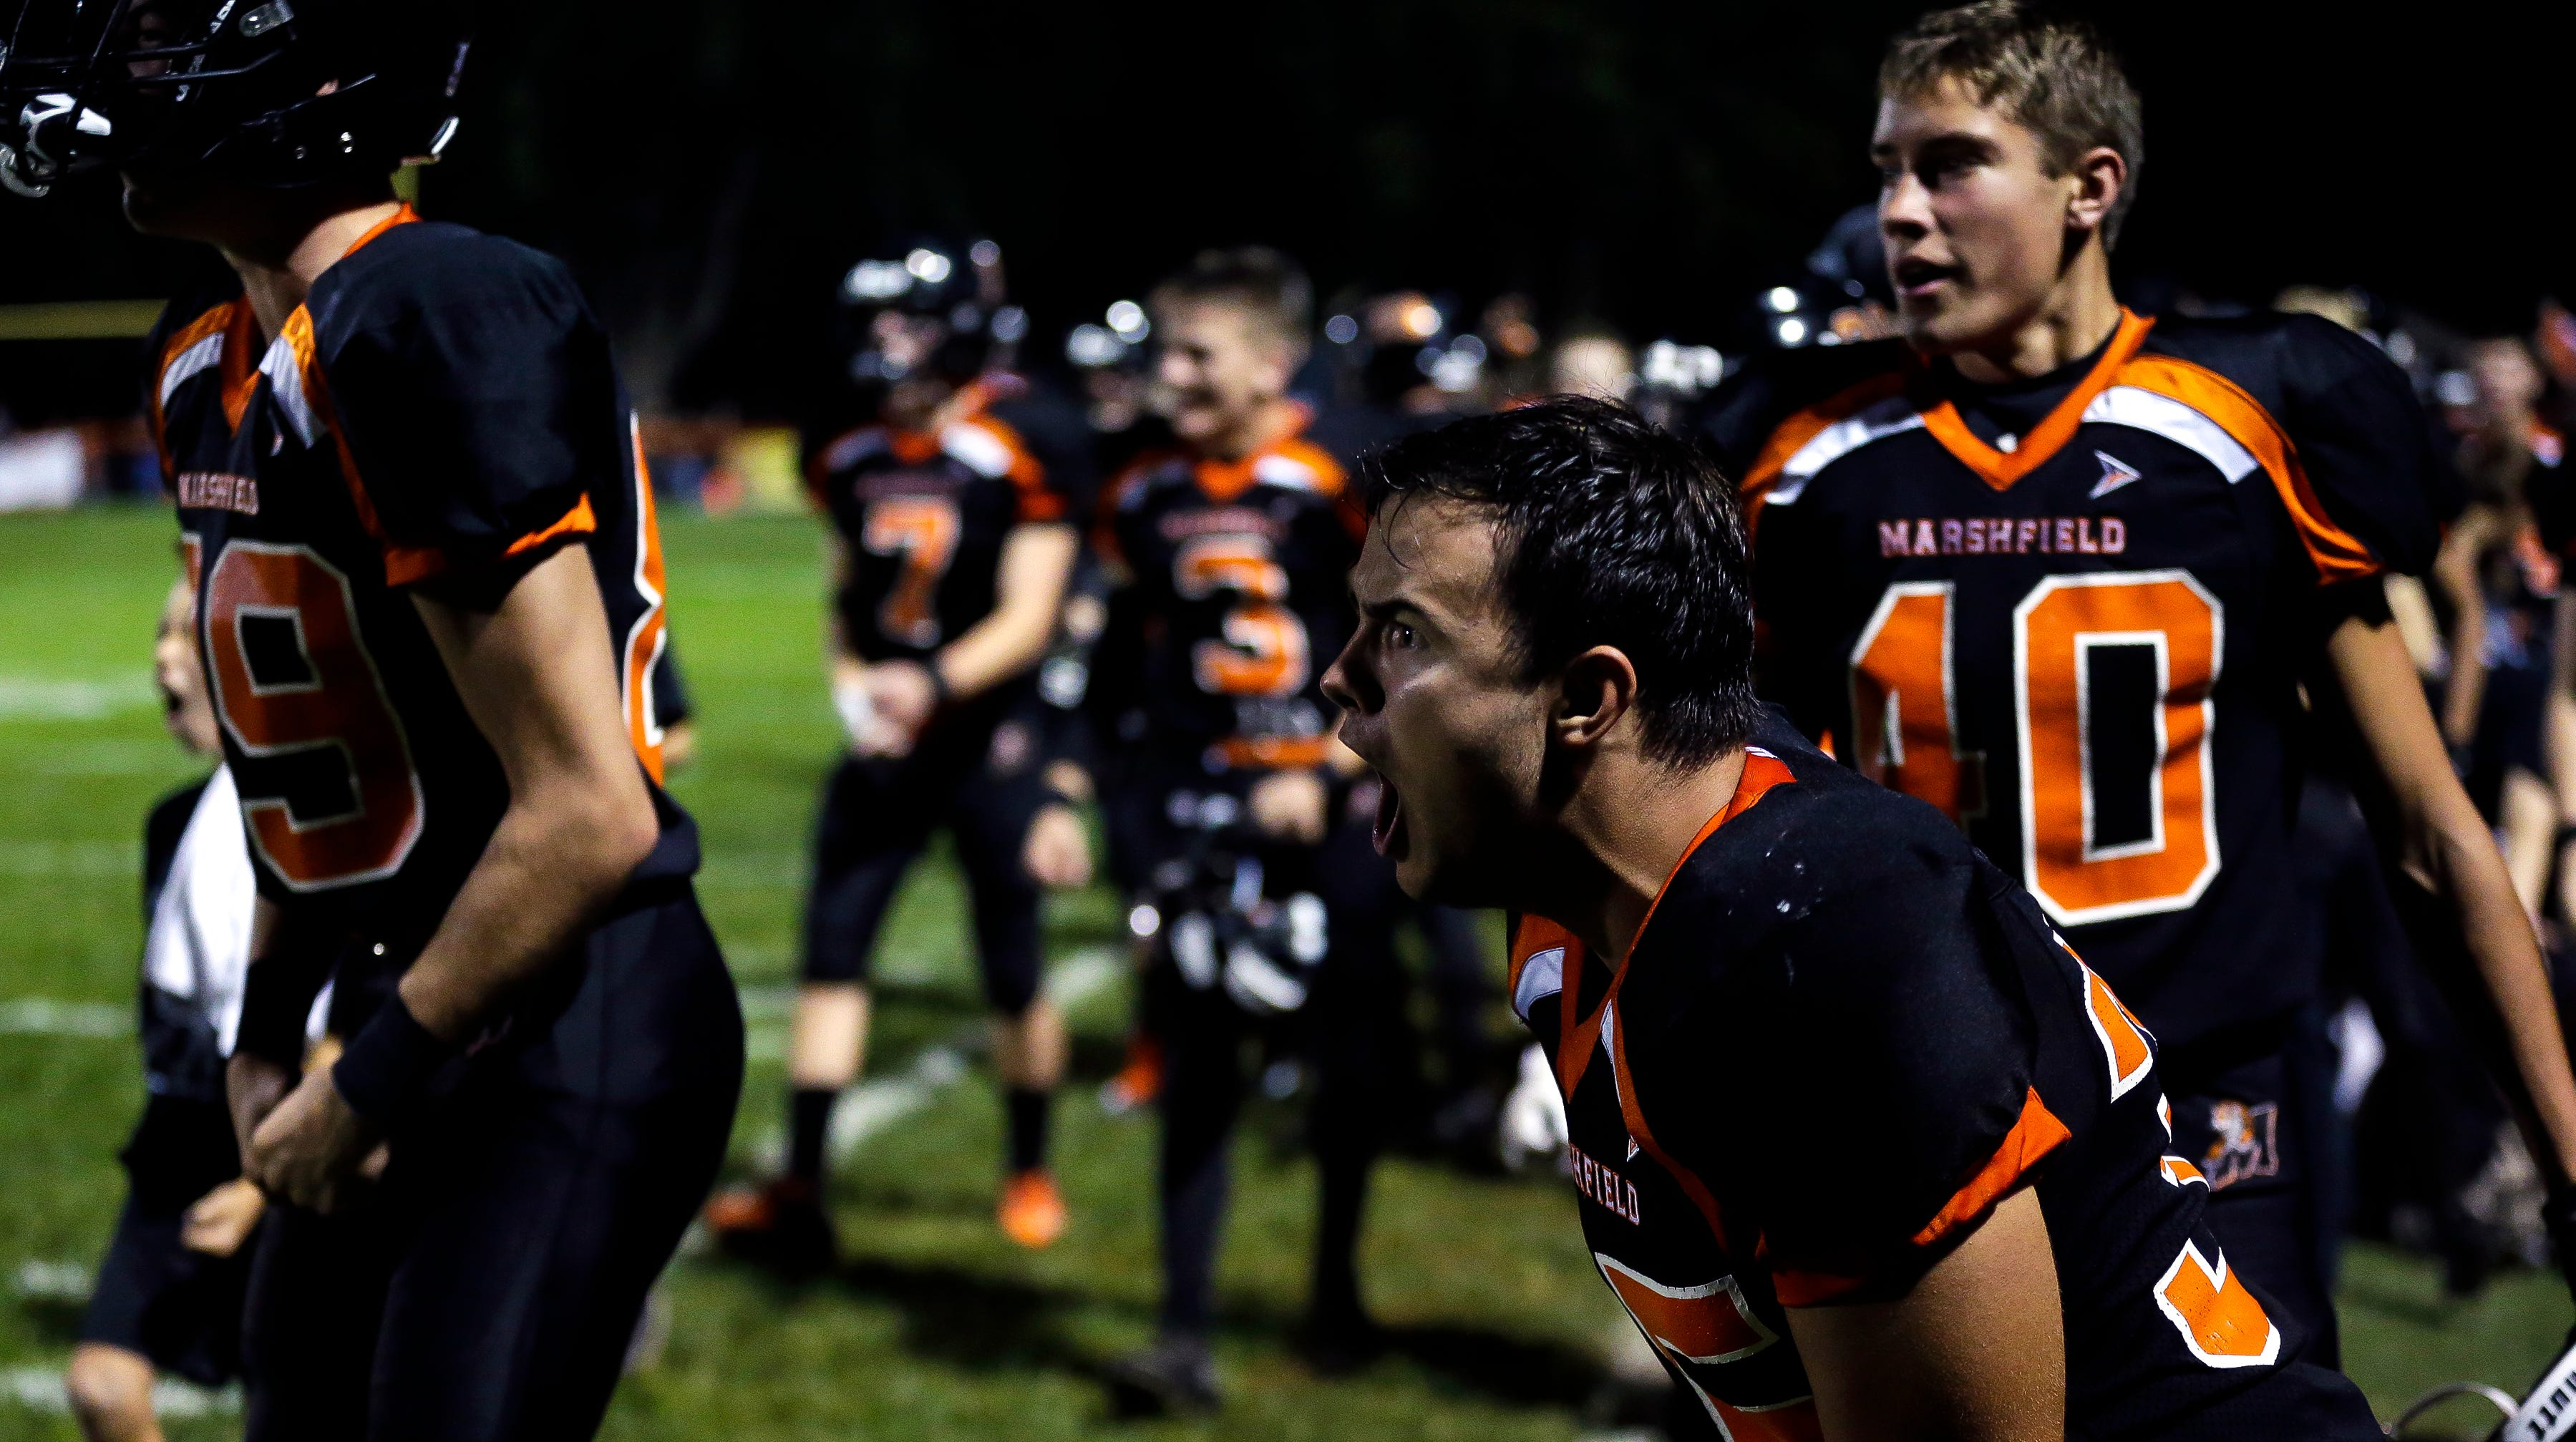 Off to its best start since 2012, Marshfield continues to find ways to win